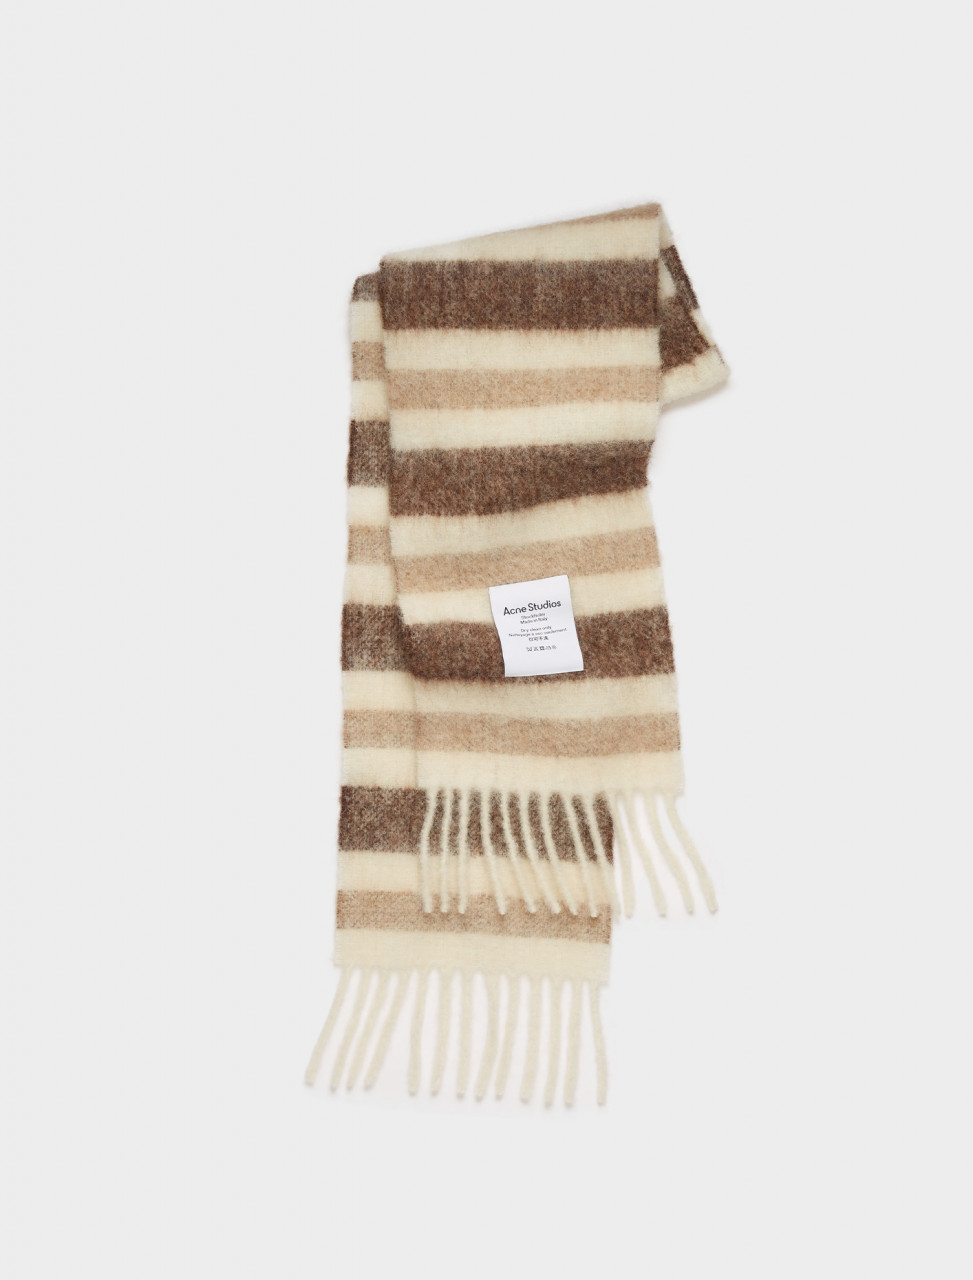 110-CA0096-CII ACNE STUDIOS STRIPED SCARF WHITE BEIGE BROWN